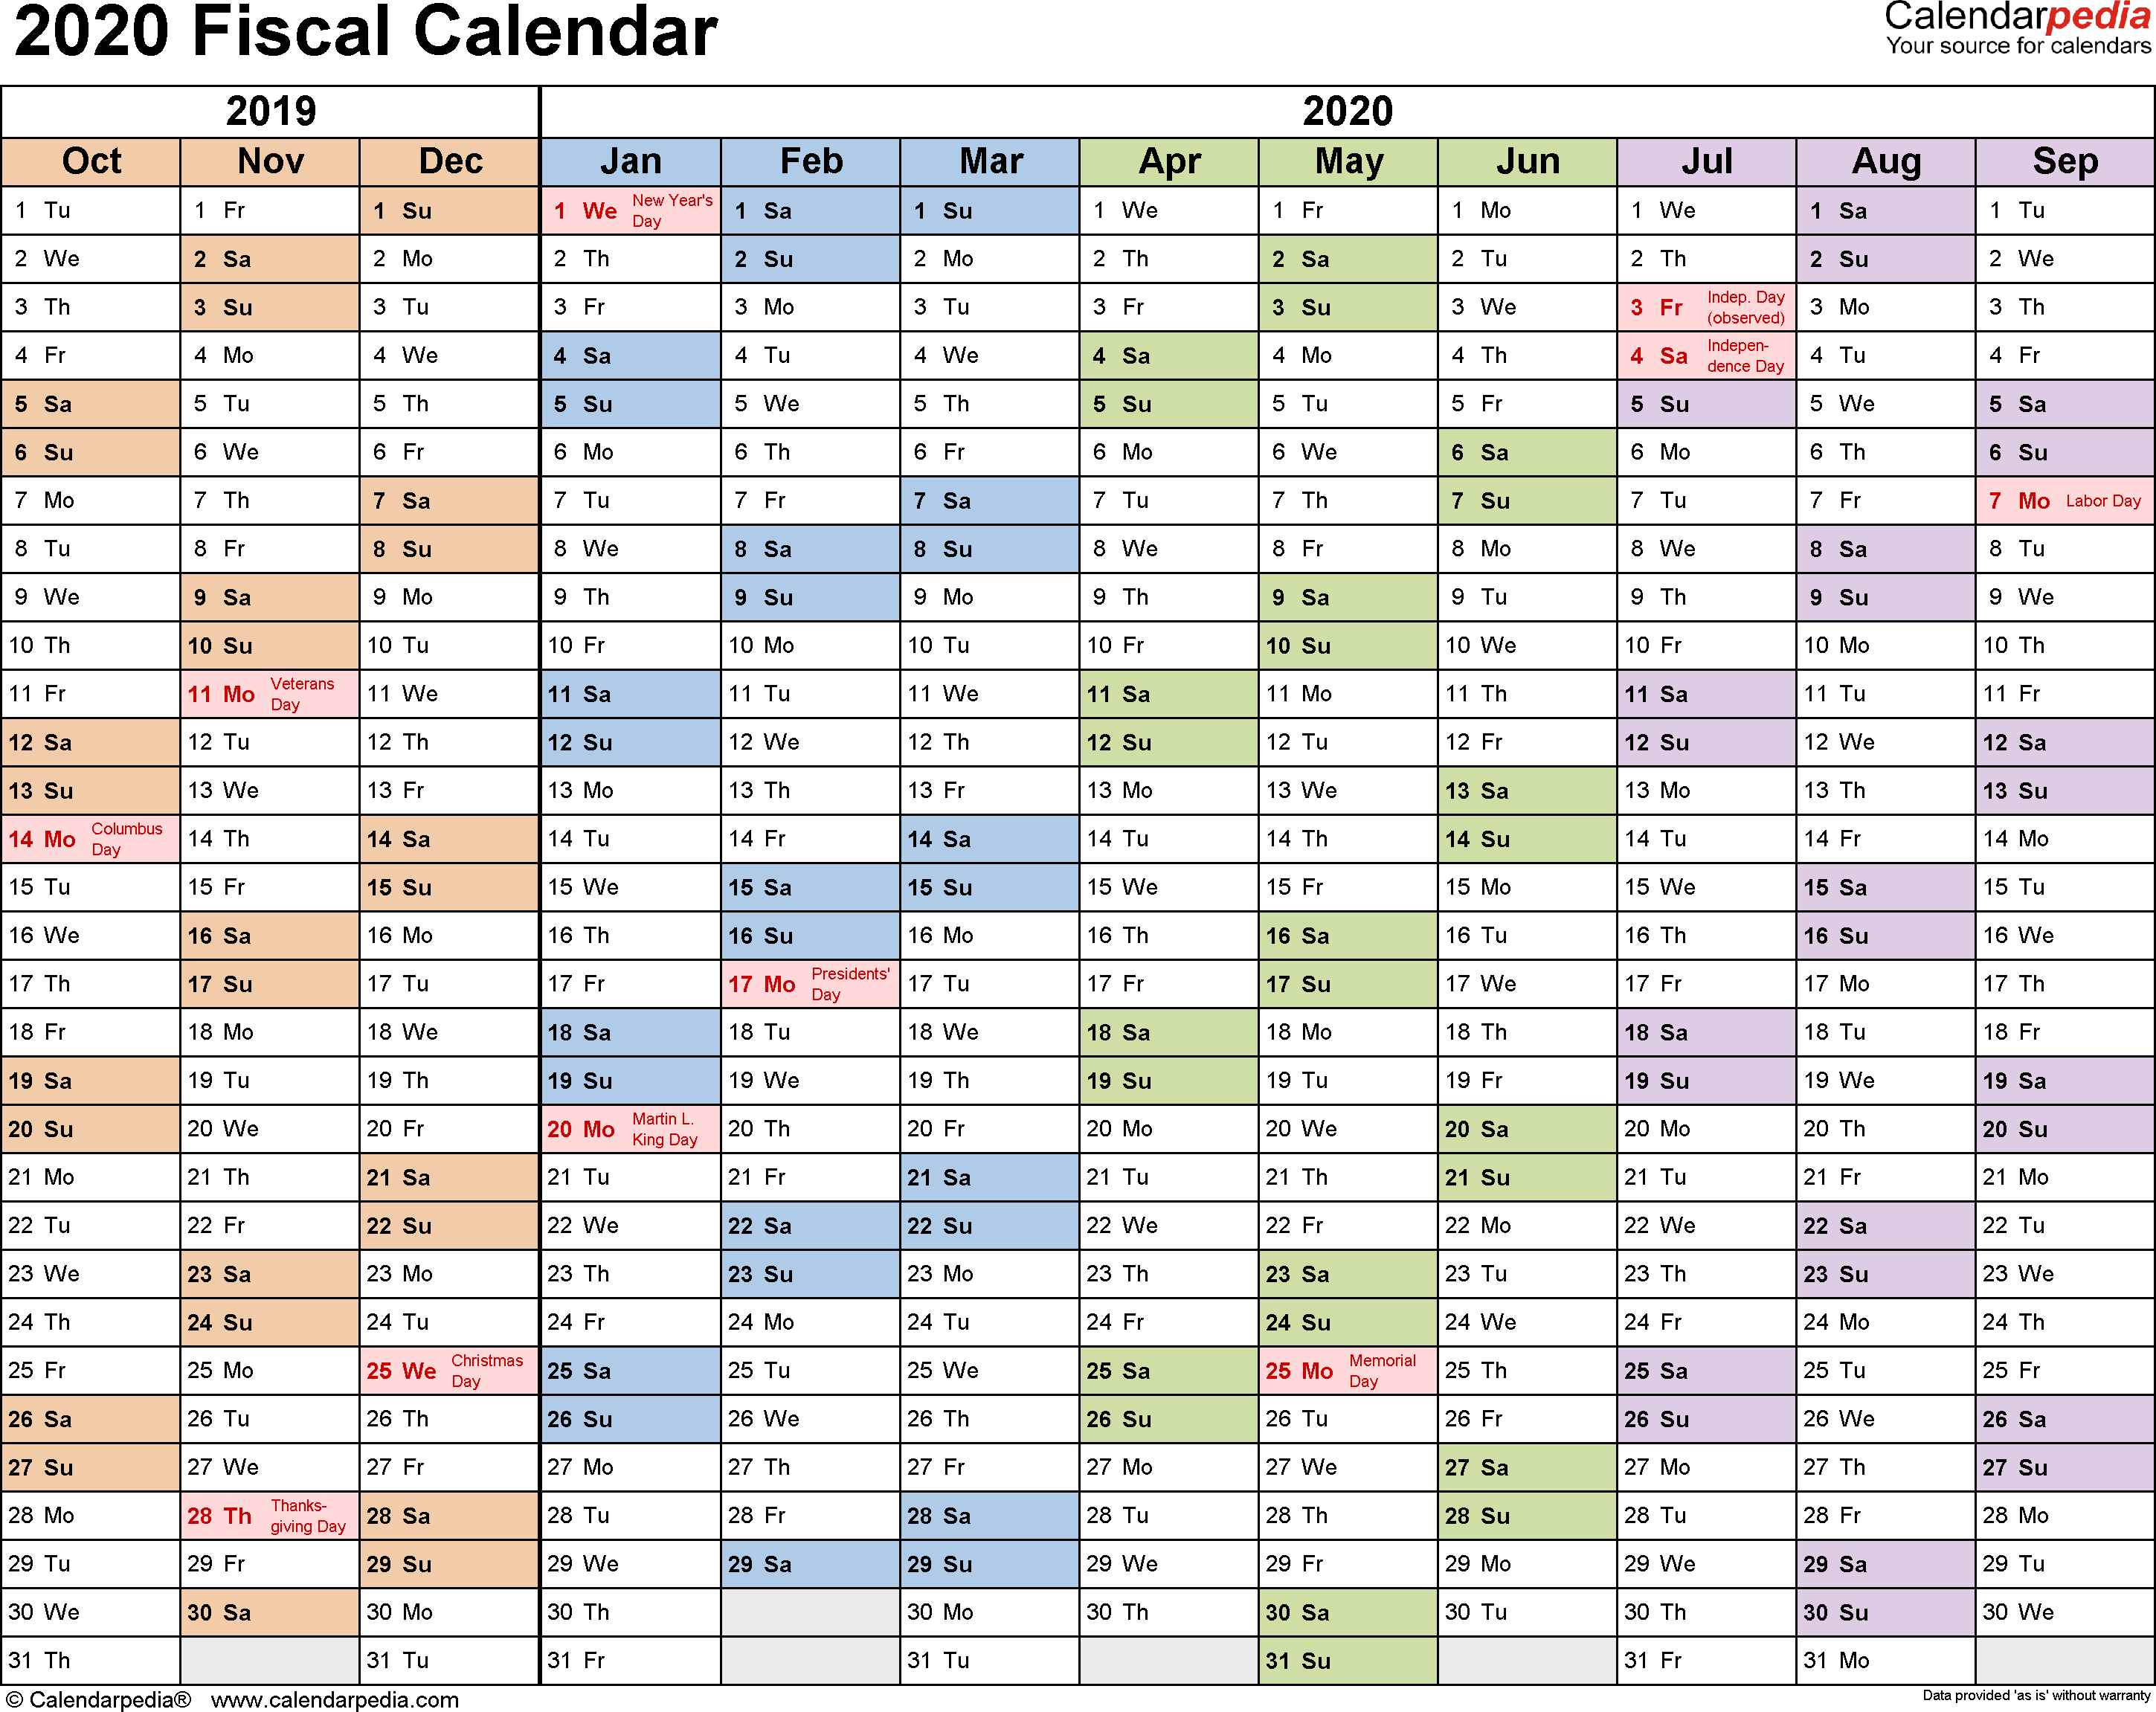 Fiscal Calendars 2020 As Free Printable Pdf Templates within Financial Calendar 2019/2020 With Week Numbers